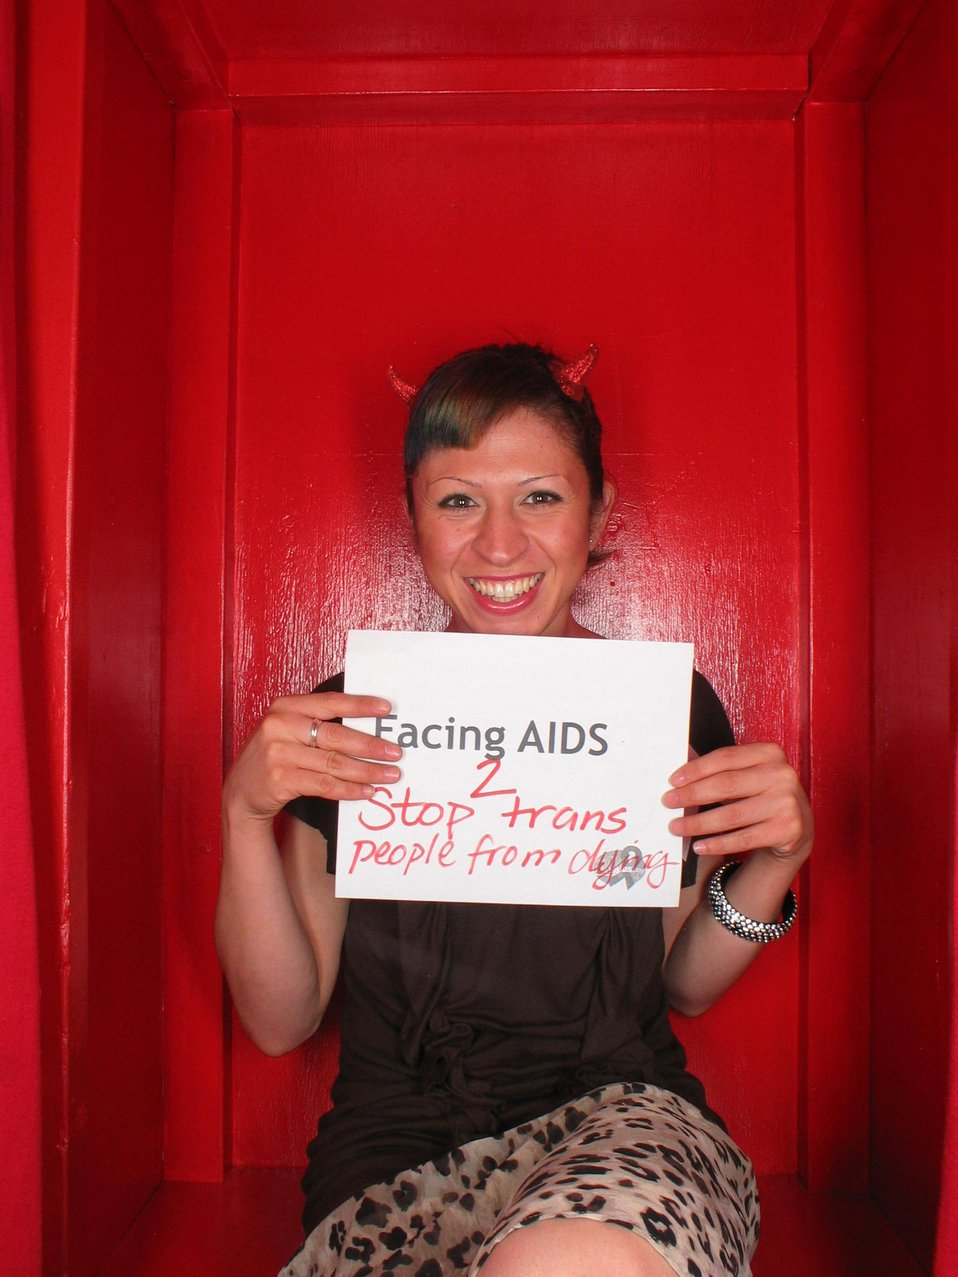 Facing AIDS 2 stop people from dying.